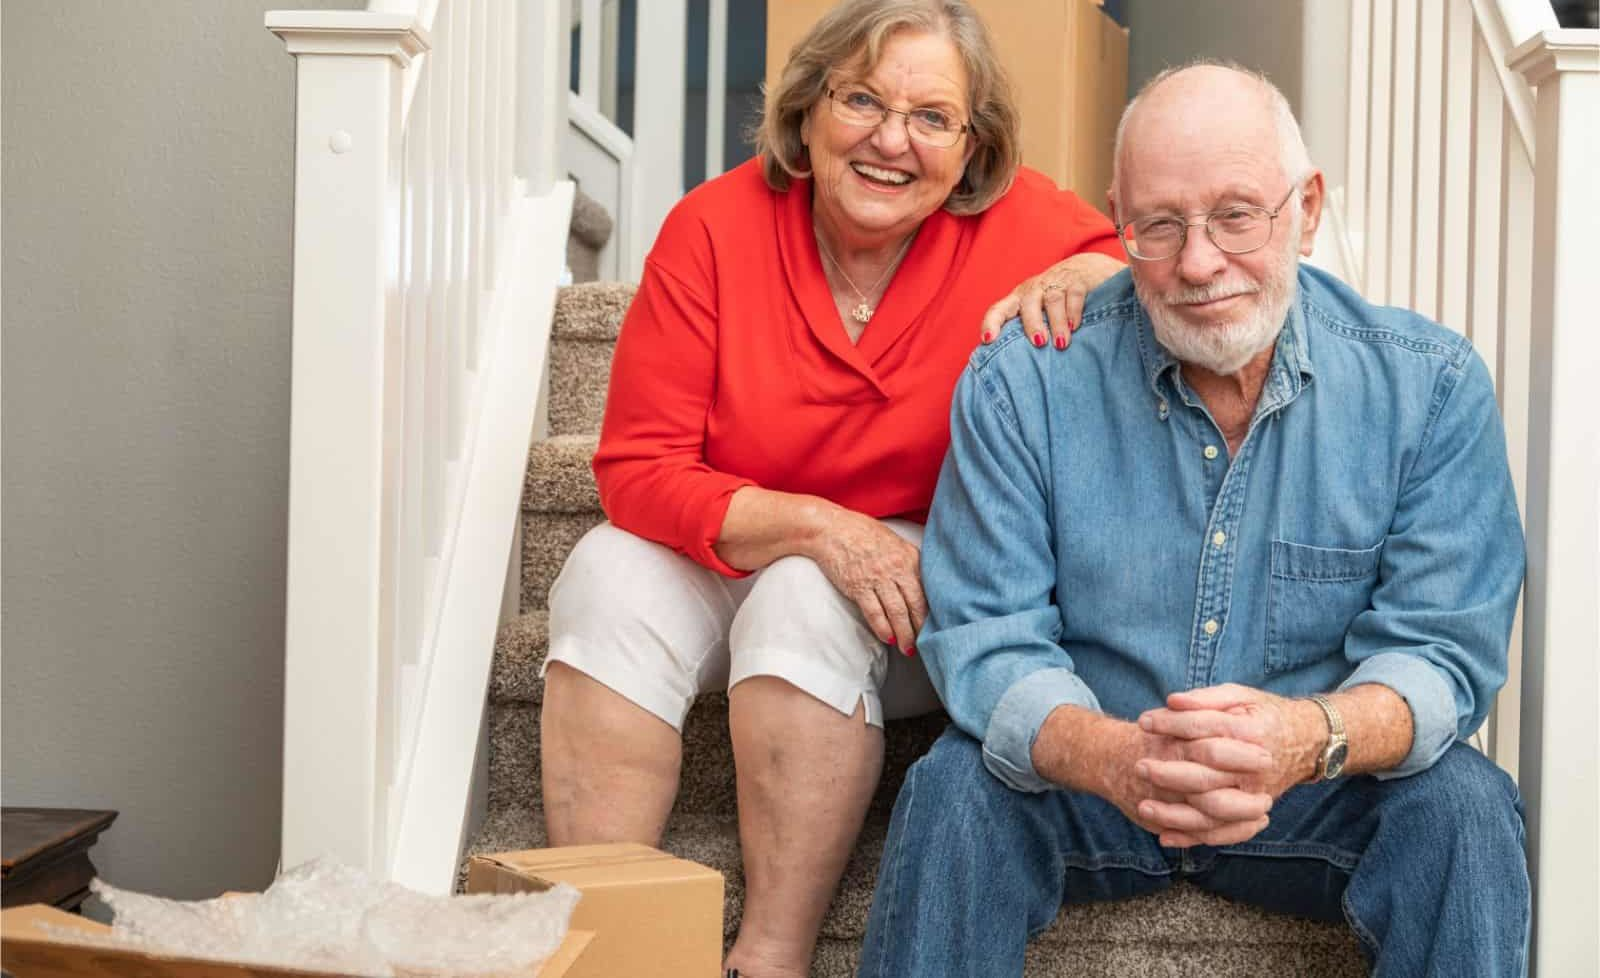 Seniors sitting on steps with moving boxes